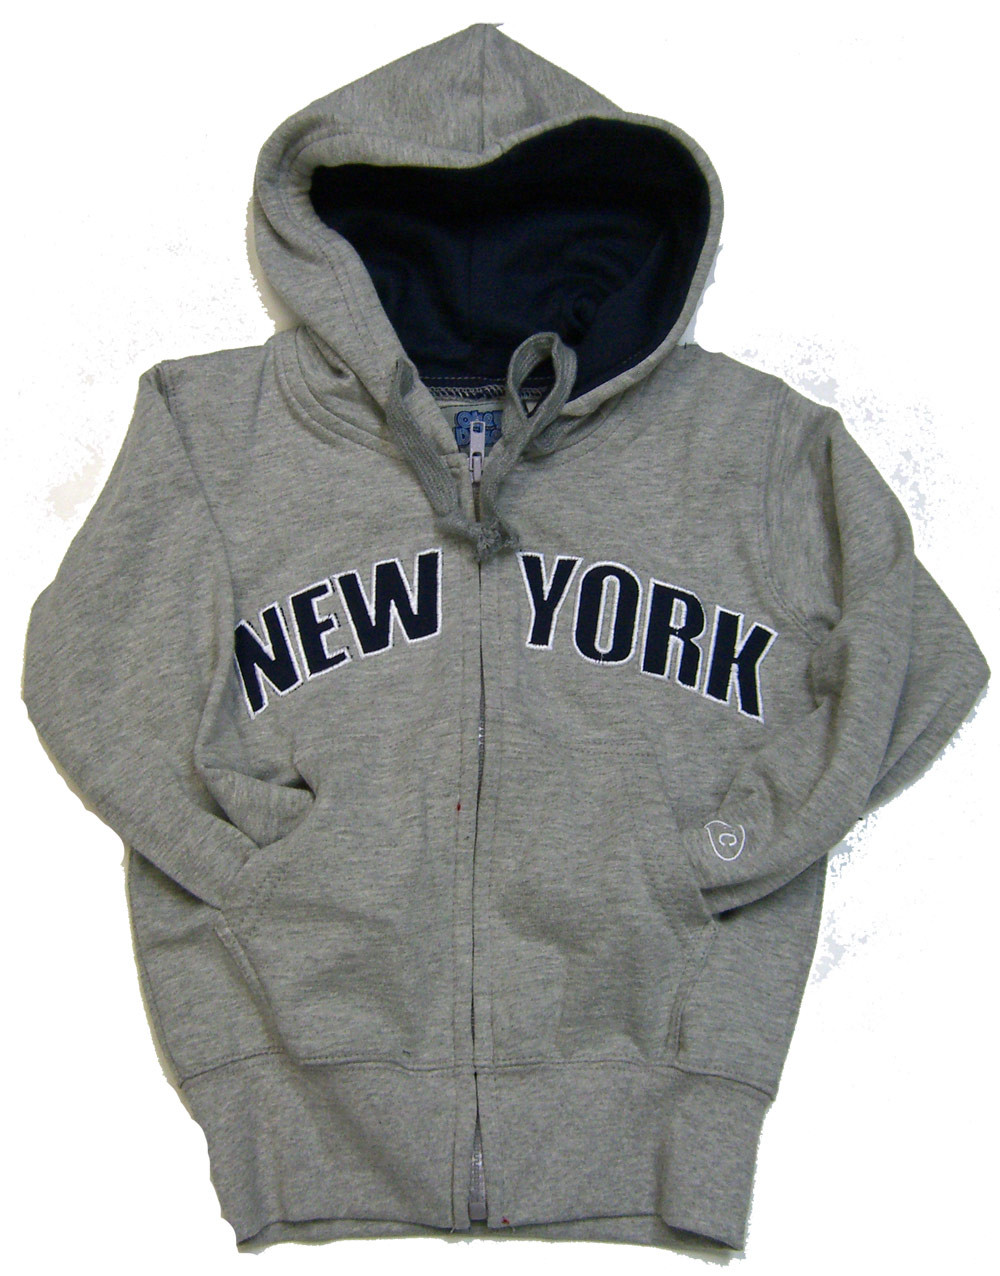 b09315f90a72 New York Kids Sweatshirt - Grey Zipper Hoodie